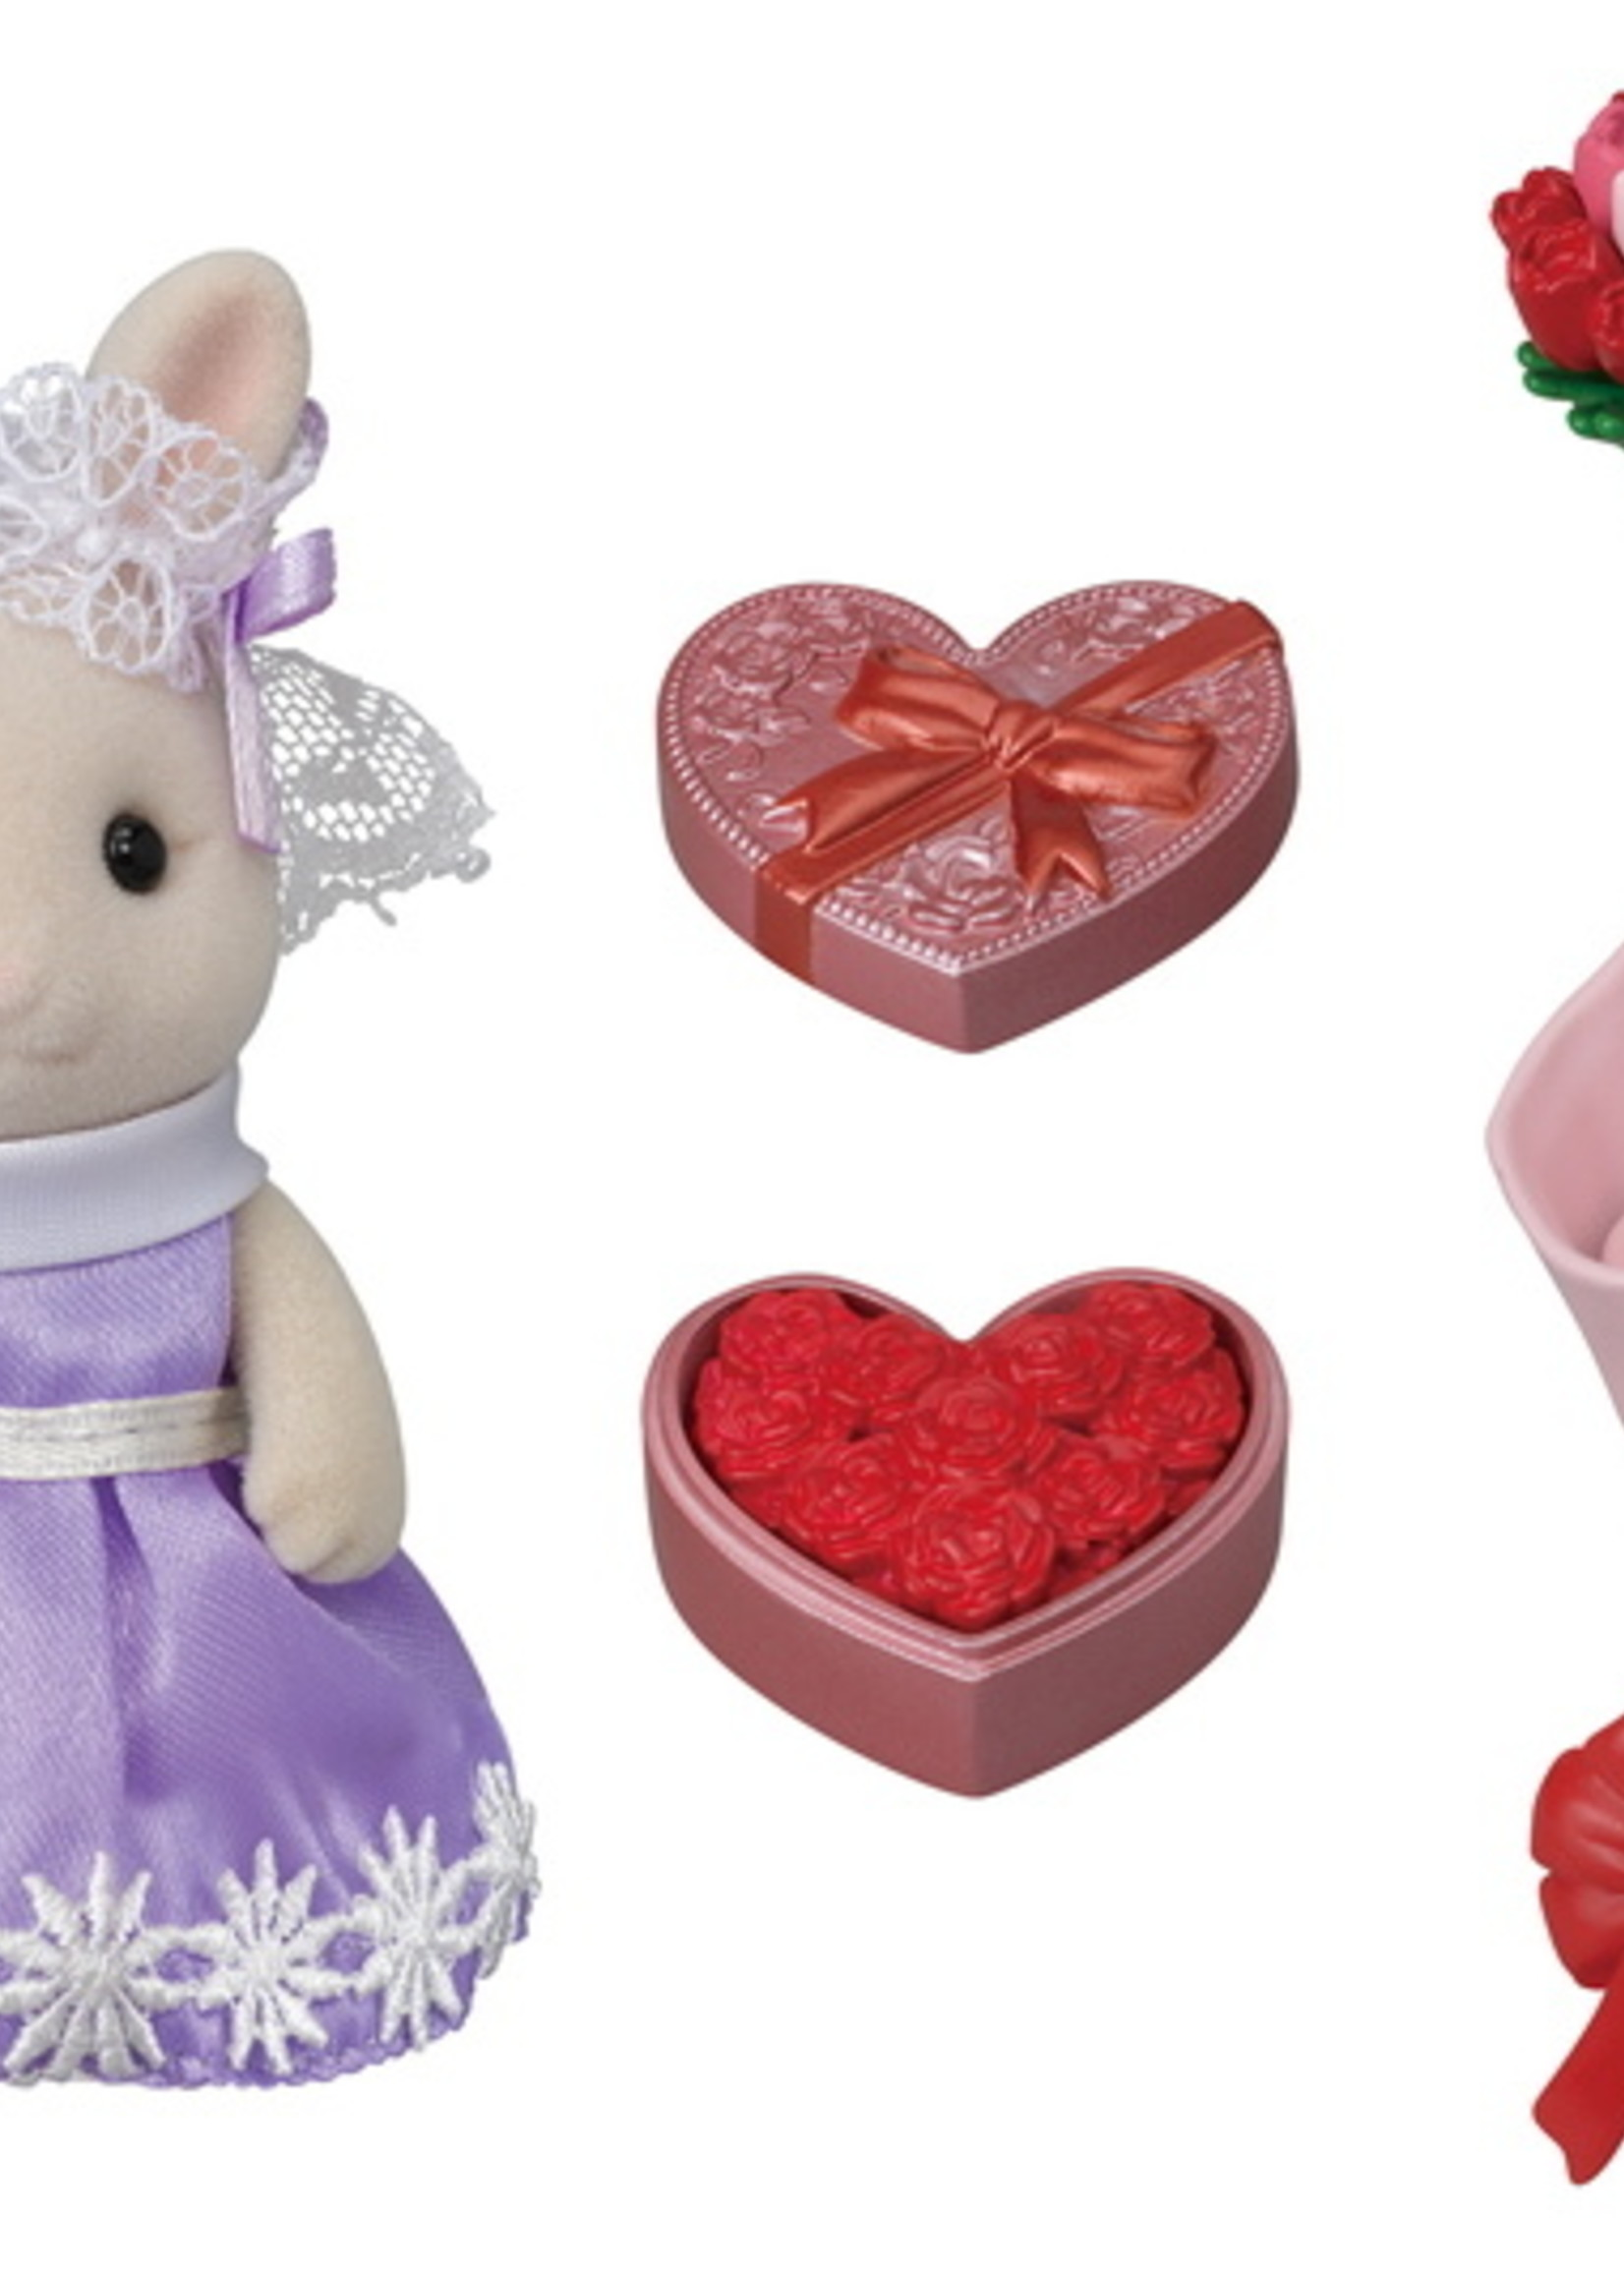 Calico Critters Flower Gifts Playset